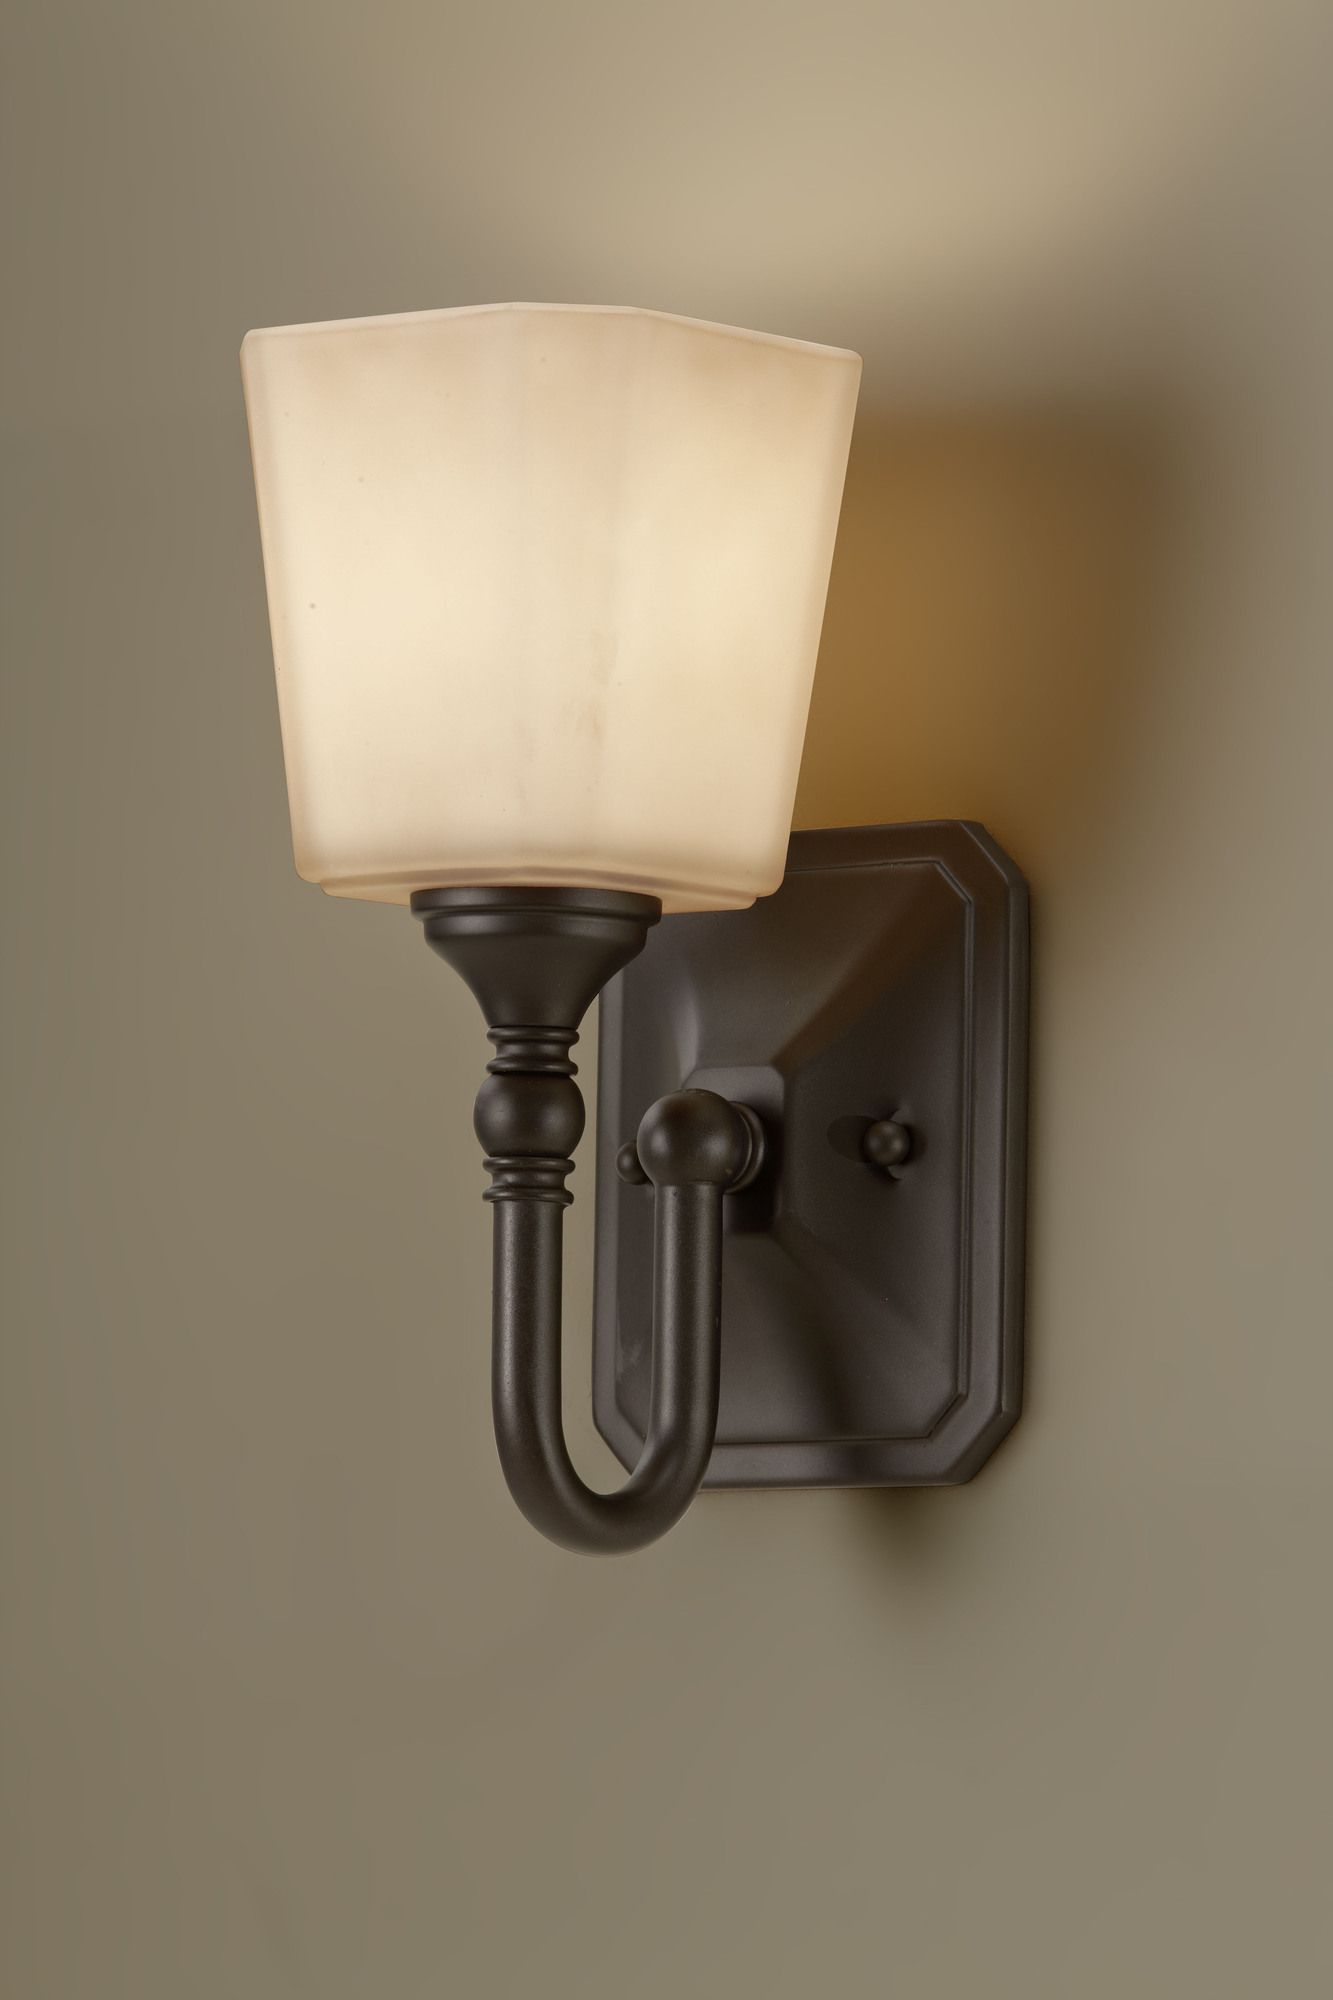 Wall Sconce Option 1 For The Home Pinterest Wall